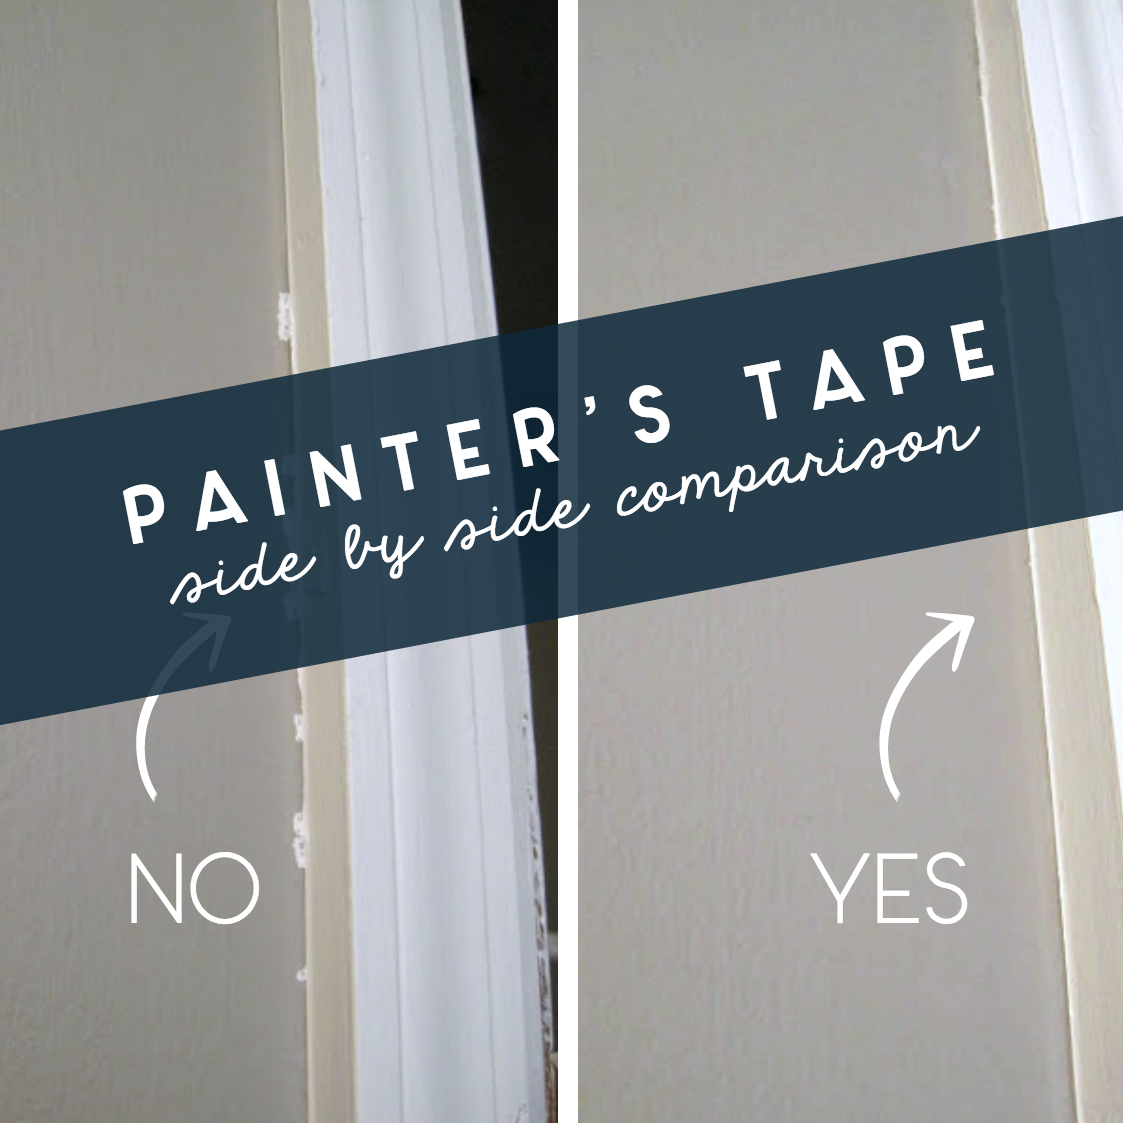 Frog Tape vs Blue Tape (Comparing Painter's Tapes)